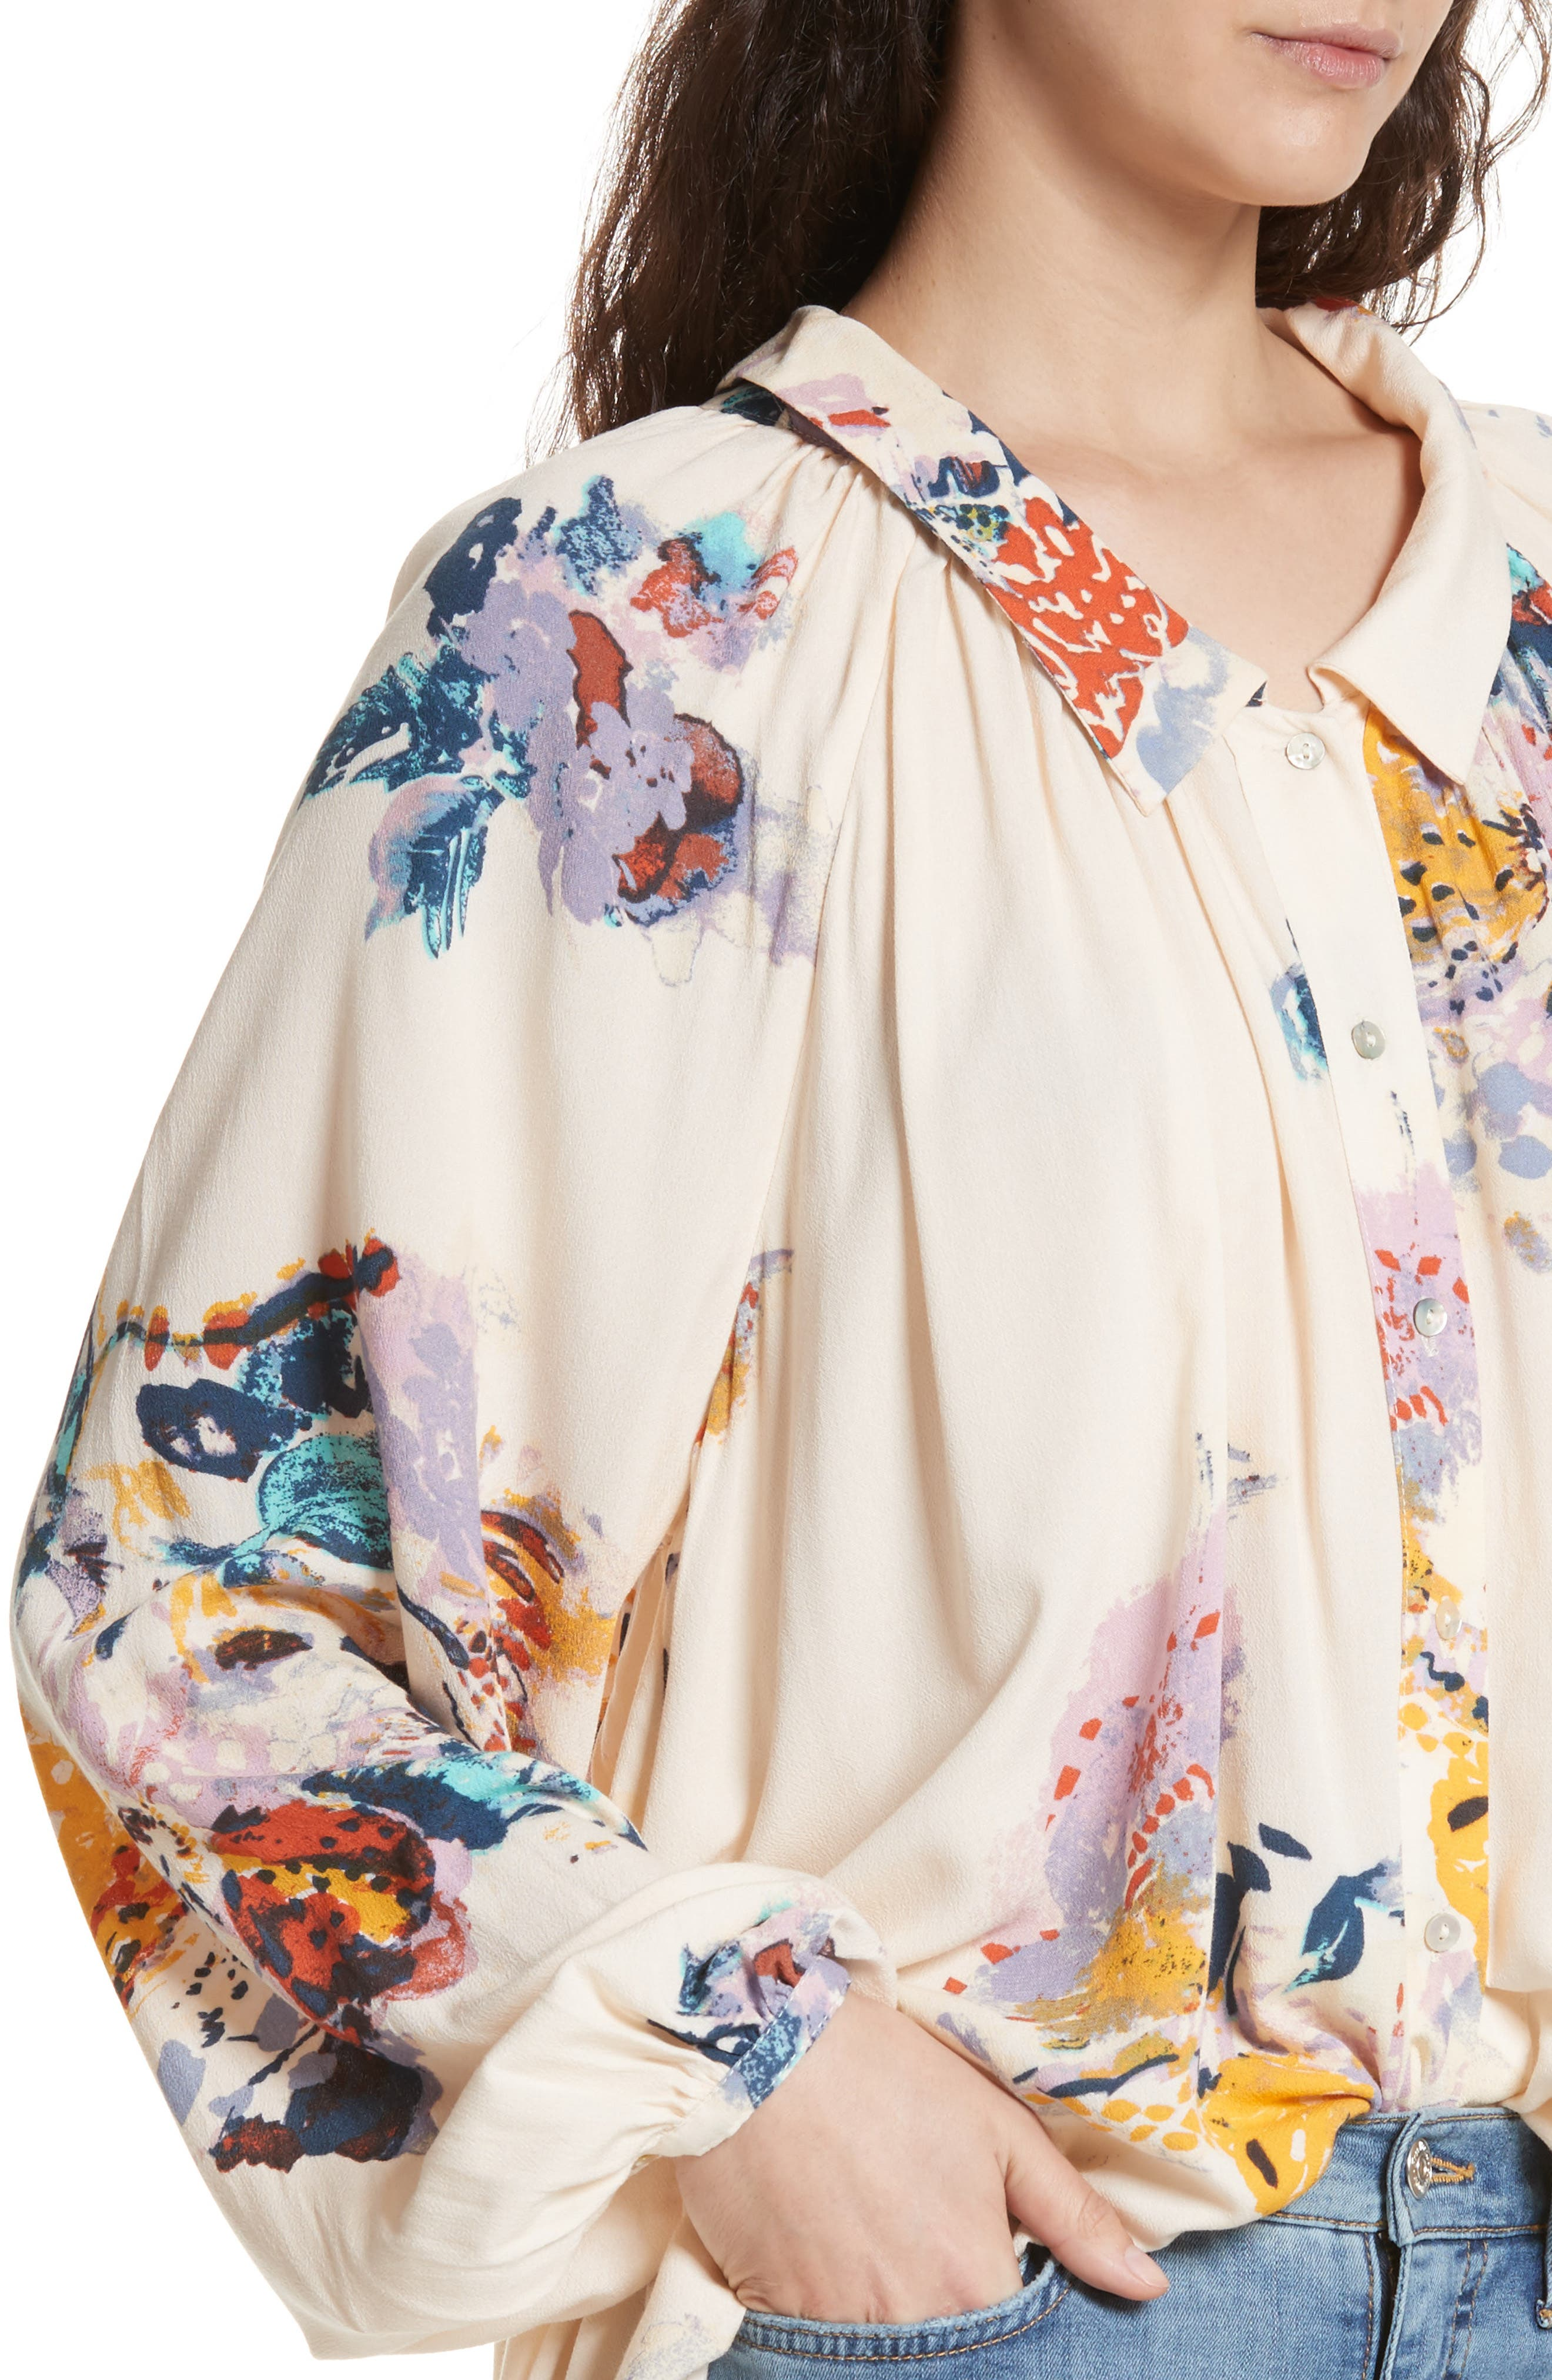 Meadow Lark Blouse,                             Alternate thumbnail 4, color,                             Cream